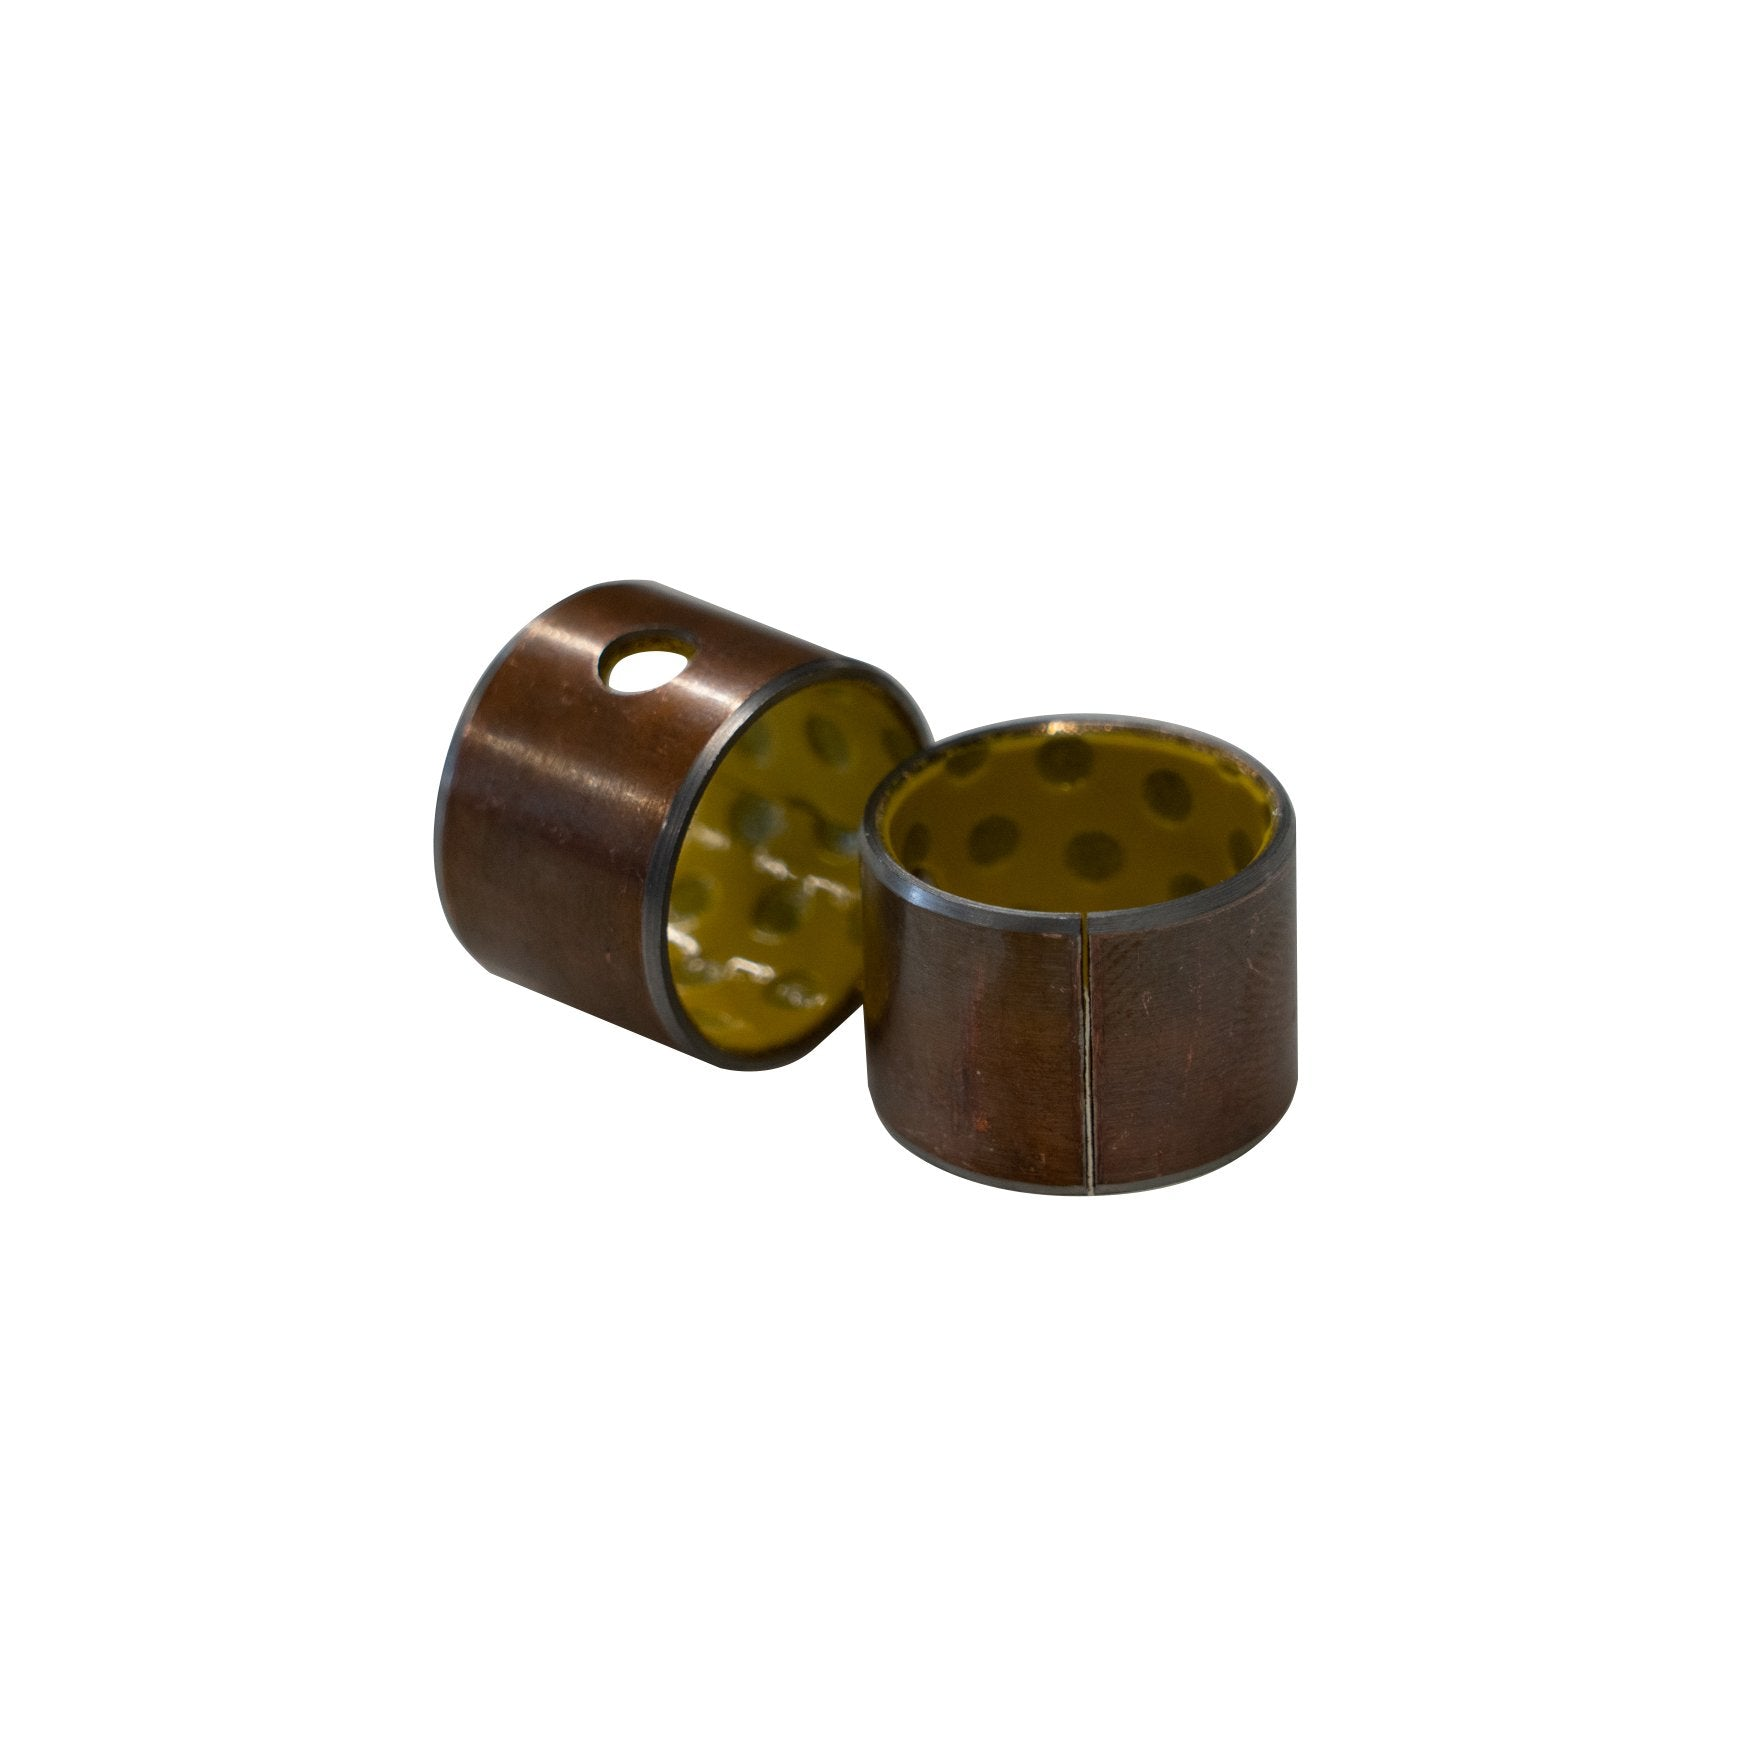 Tie Rod Bushing SKU: 49534-FJ101